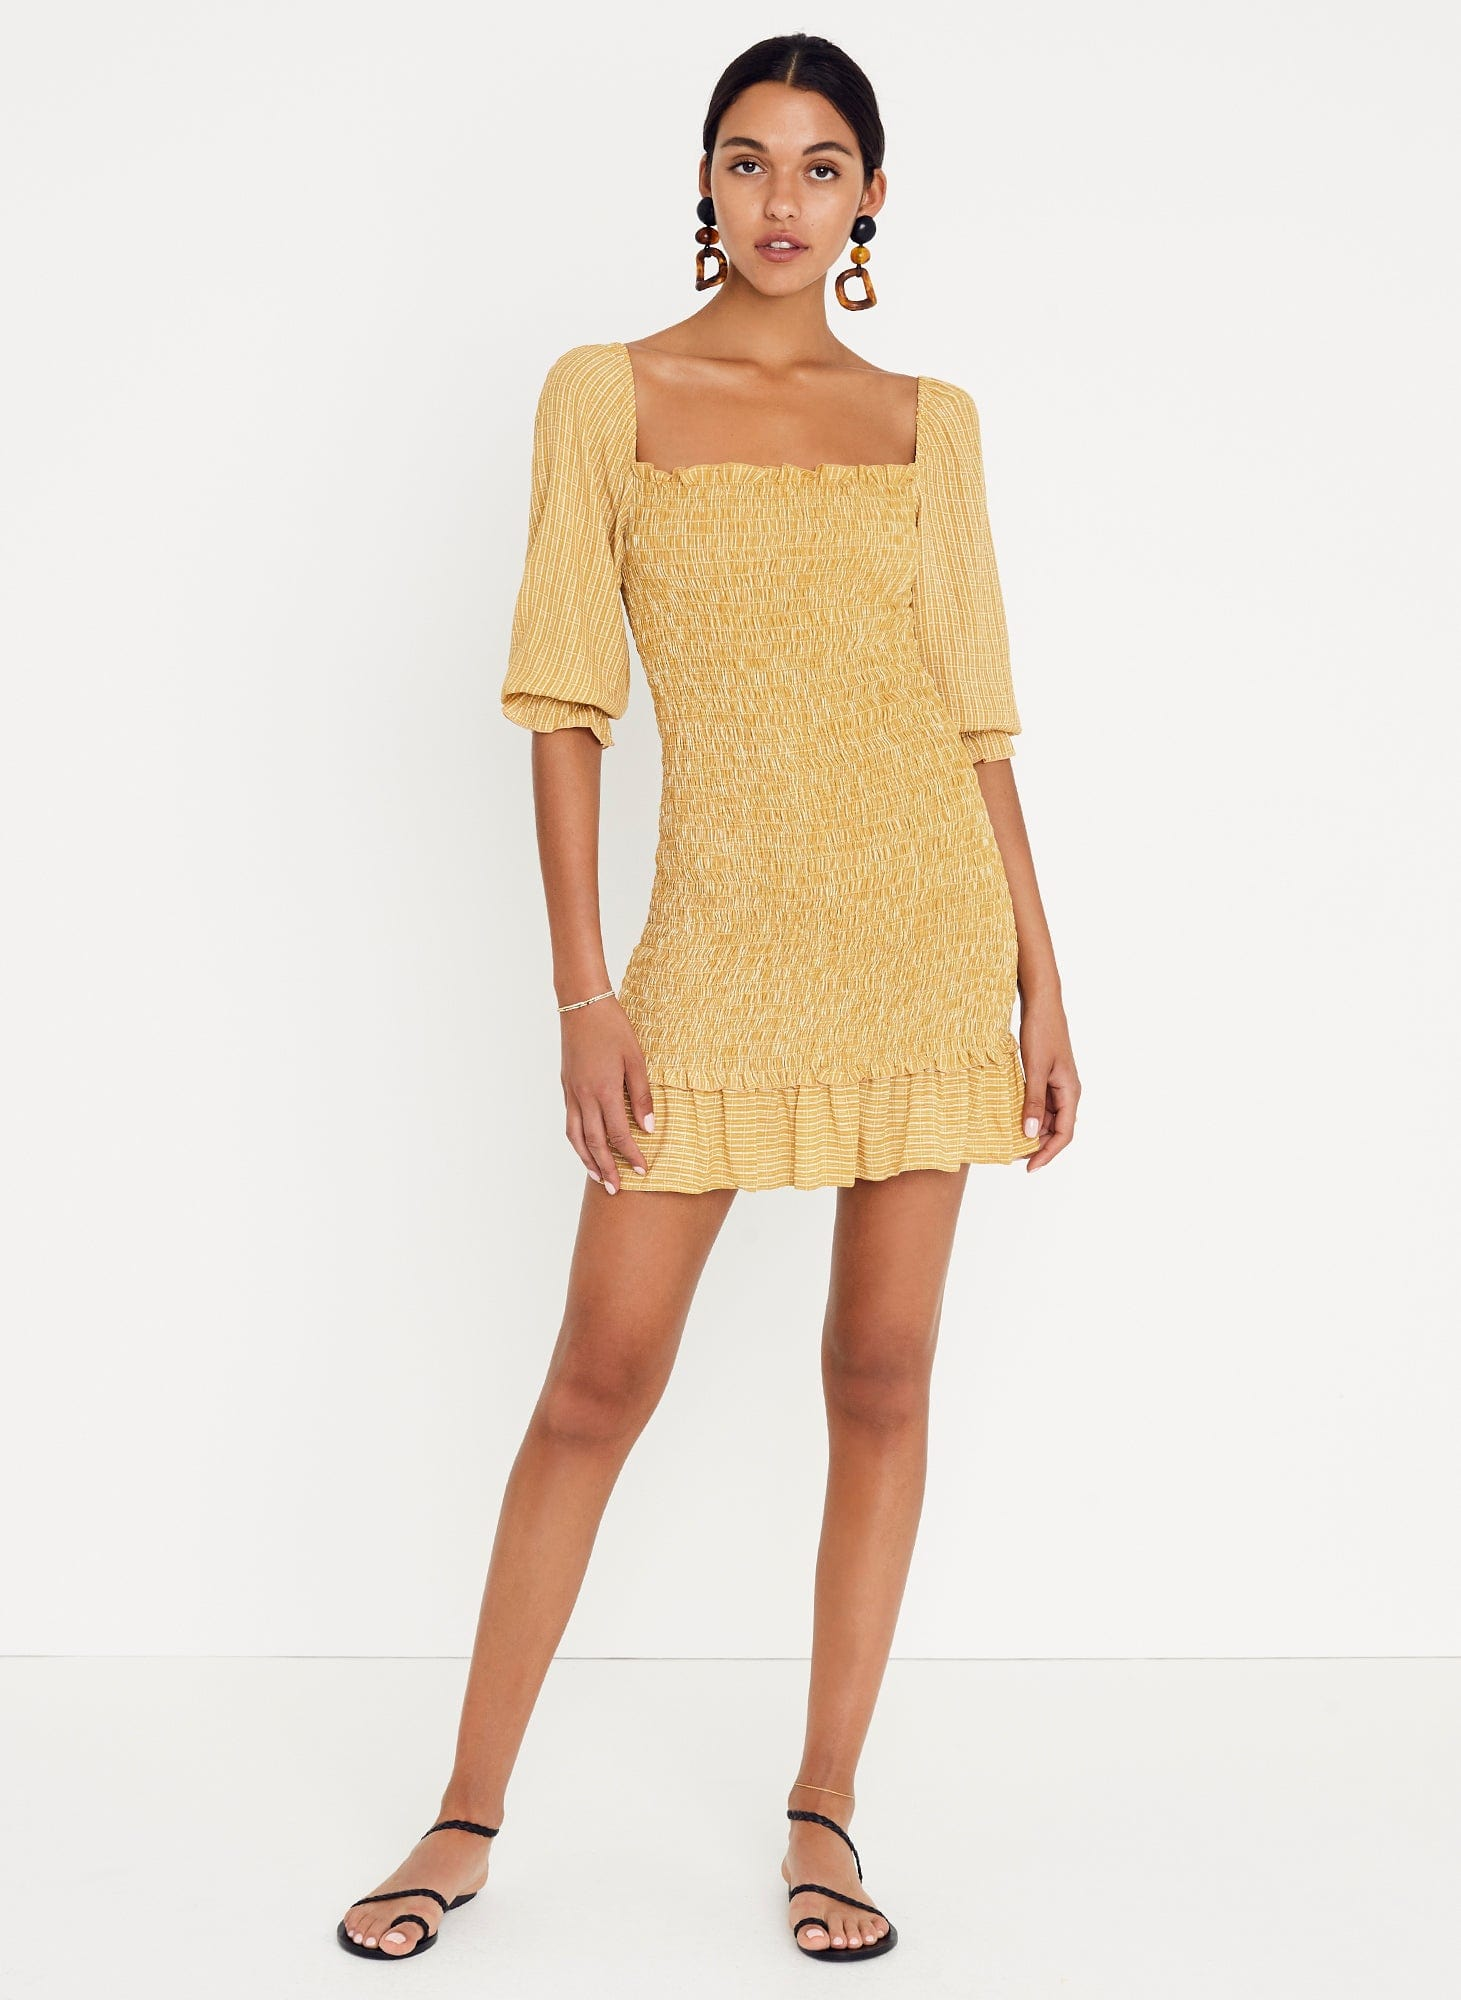 Ceretti Check Print - Desert - Es Saada Mini Dress